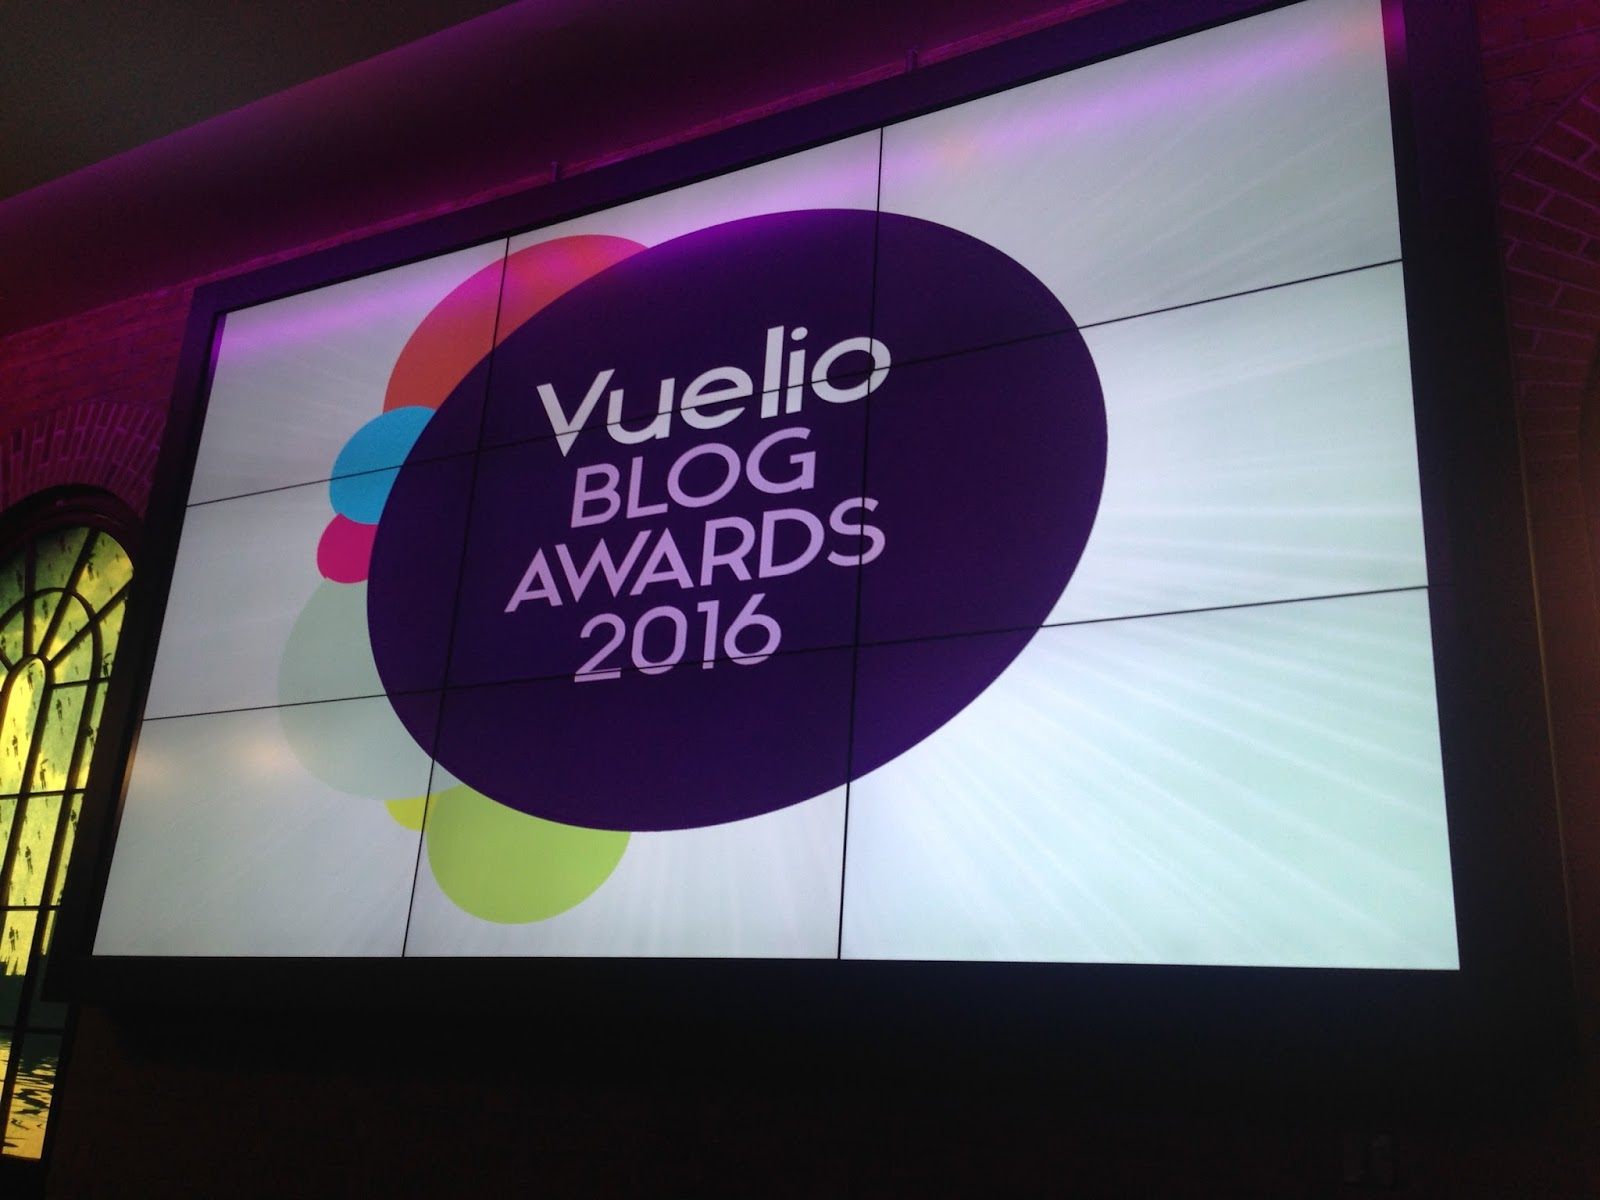 Vuelio blog awards 2016